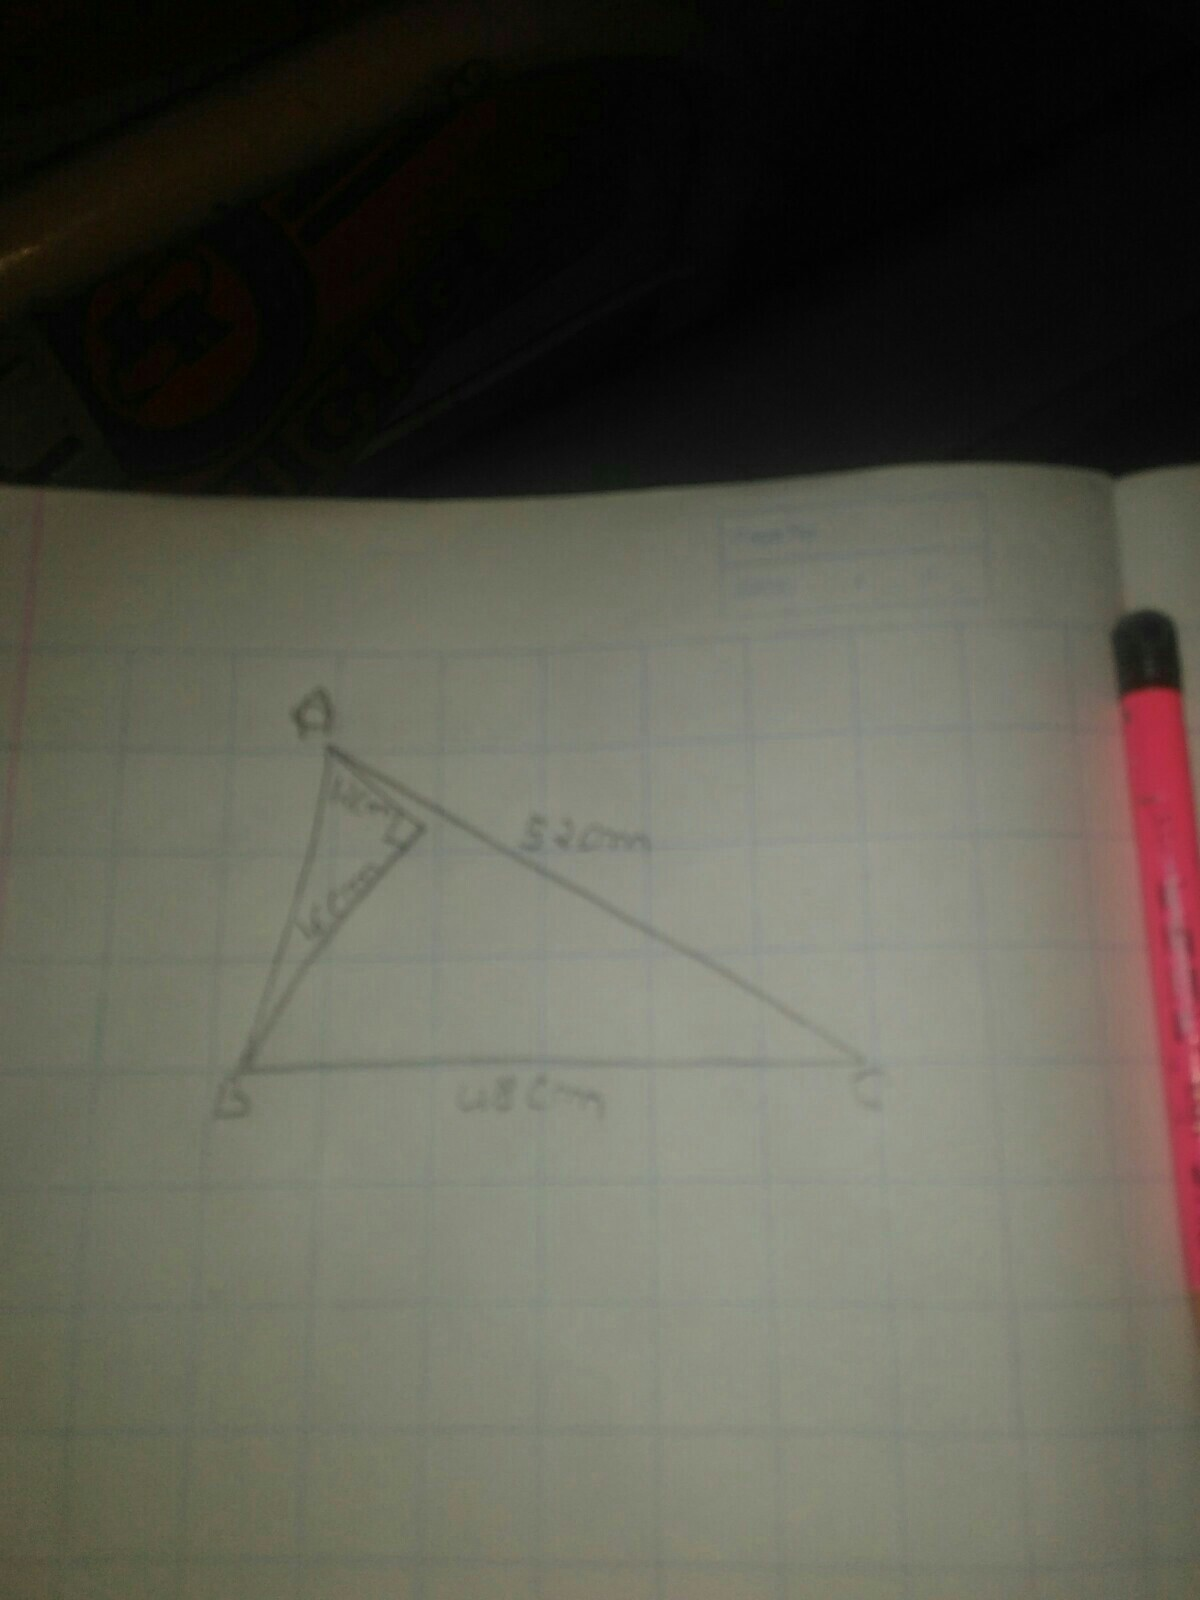 Find The Area Of The Shaded Region In The Figure Given